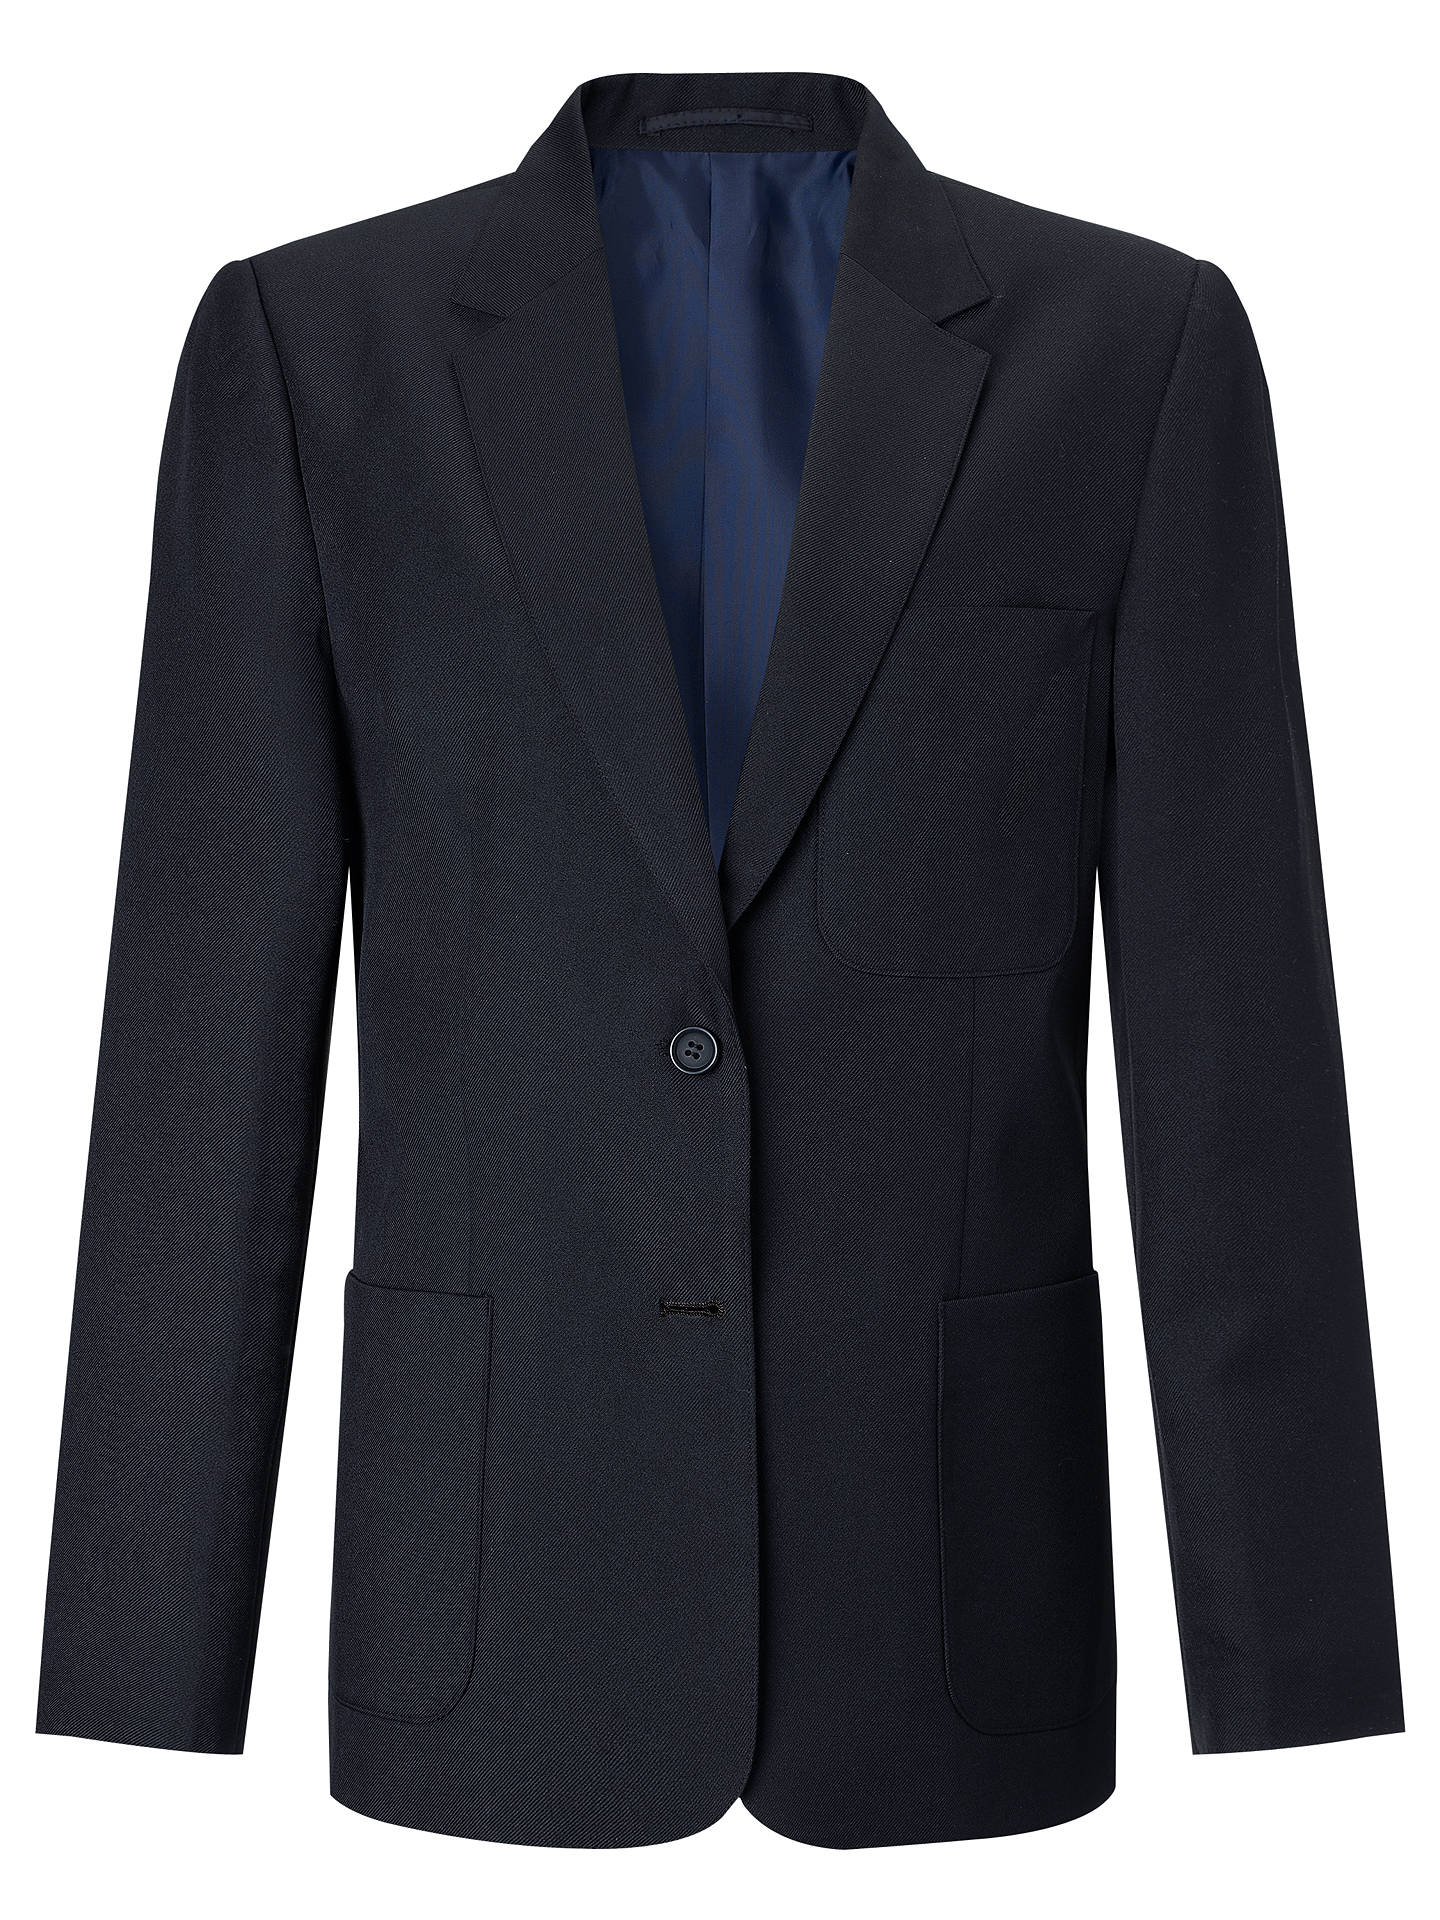 "BuyJohn Lewis & Partners Girls' School Eco Blazer, Navy, Chest 22"" / 3-4 years Online at johnlewis.com"